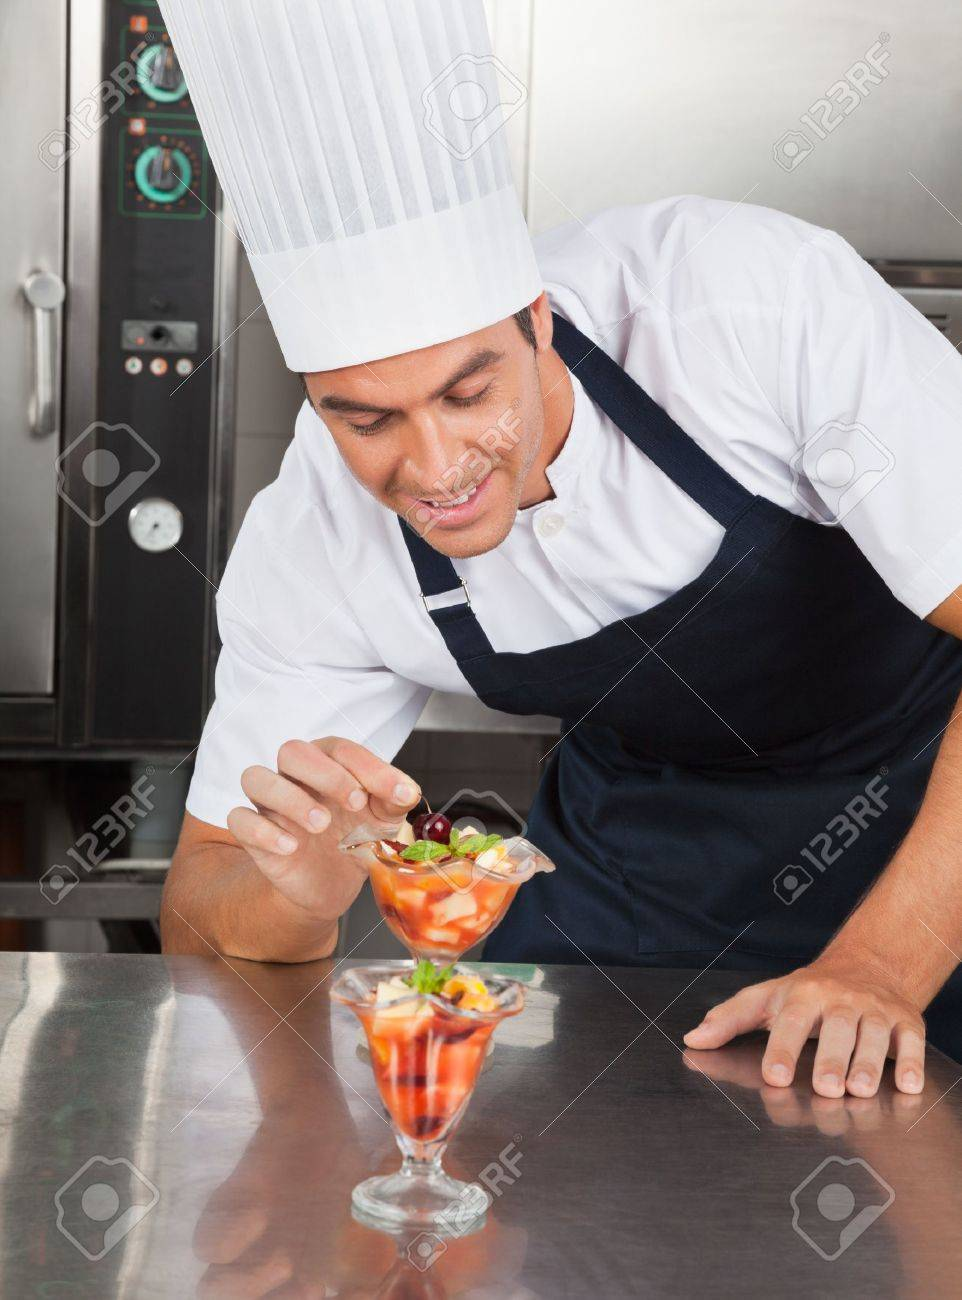 Young Chef Decorating Delicious Dessert Stock Photo - 21219990